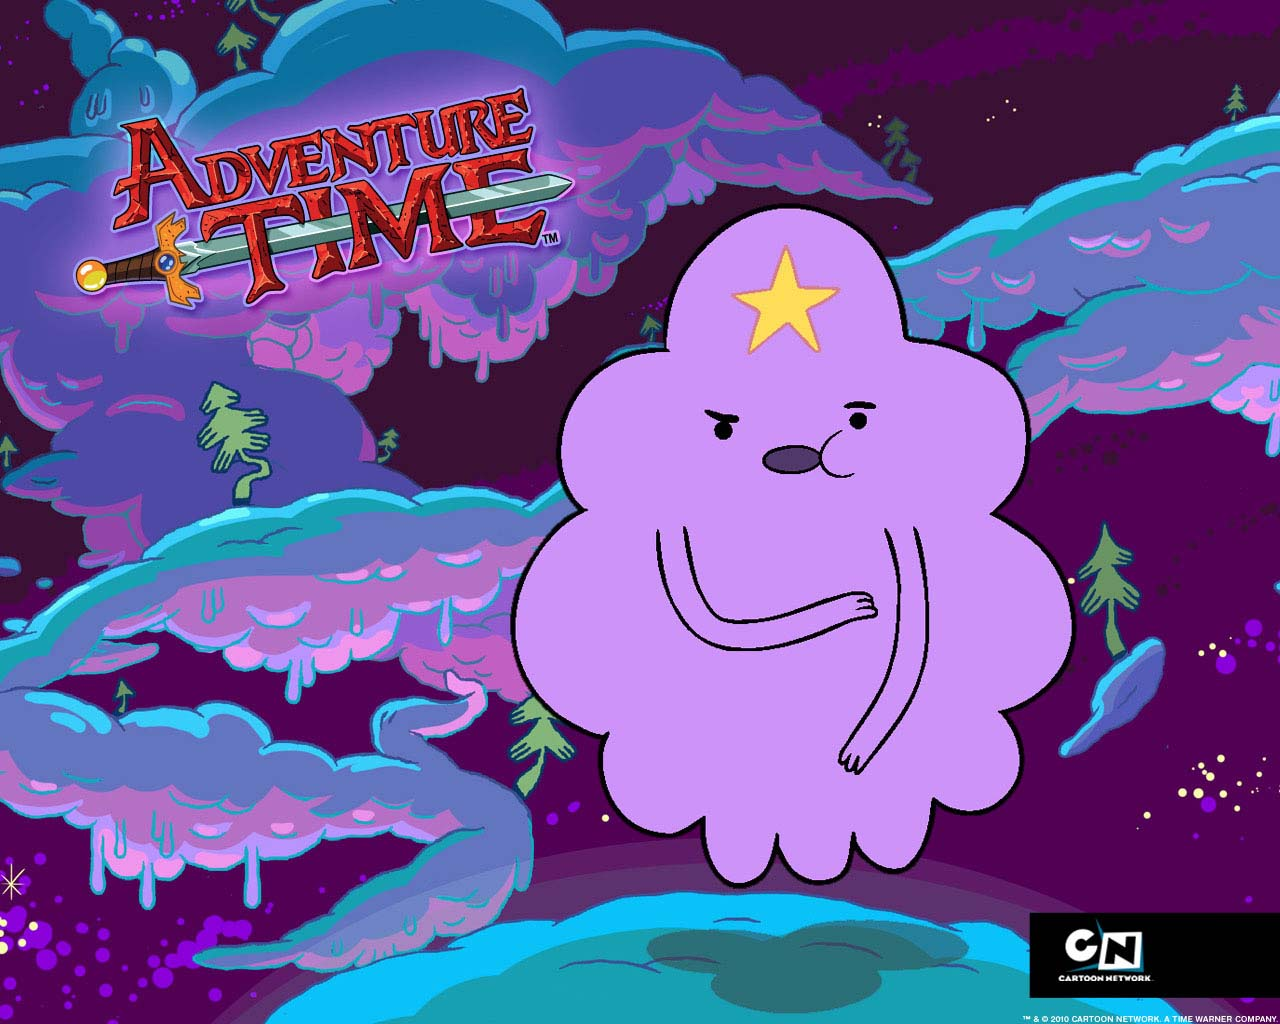 The legend of avatar show adventure time wallpapers hora de the legend of avatar show adventure time wallpapers hora de aventura cartoon network altavistaventures Gallery